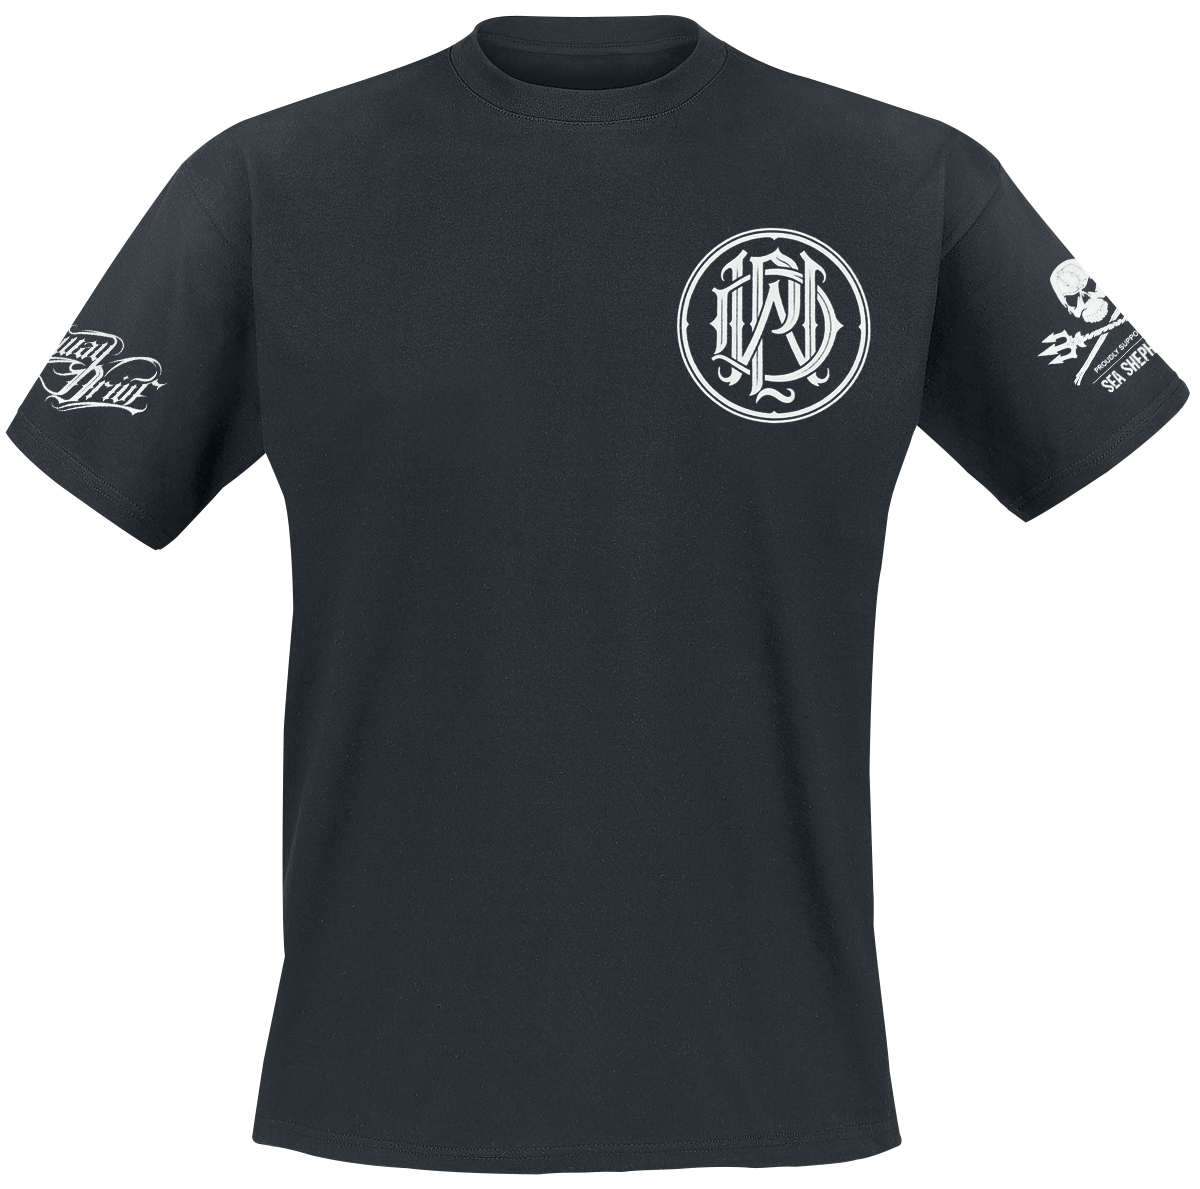 Parkway Drive - Sea Shepherd Cooperation - There Will Be No Future - T-Shirt - black image